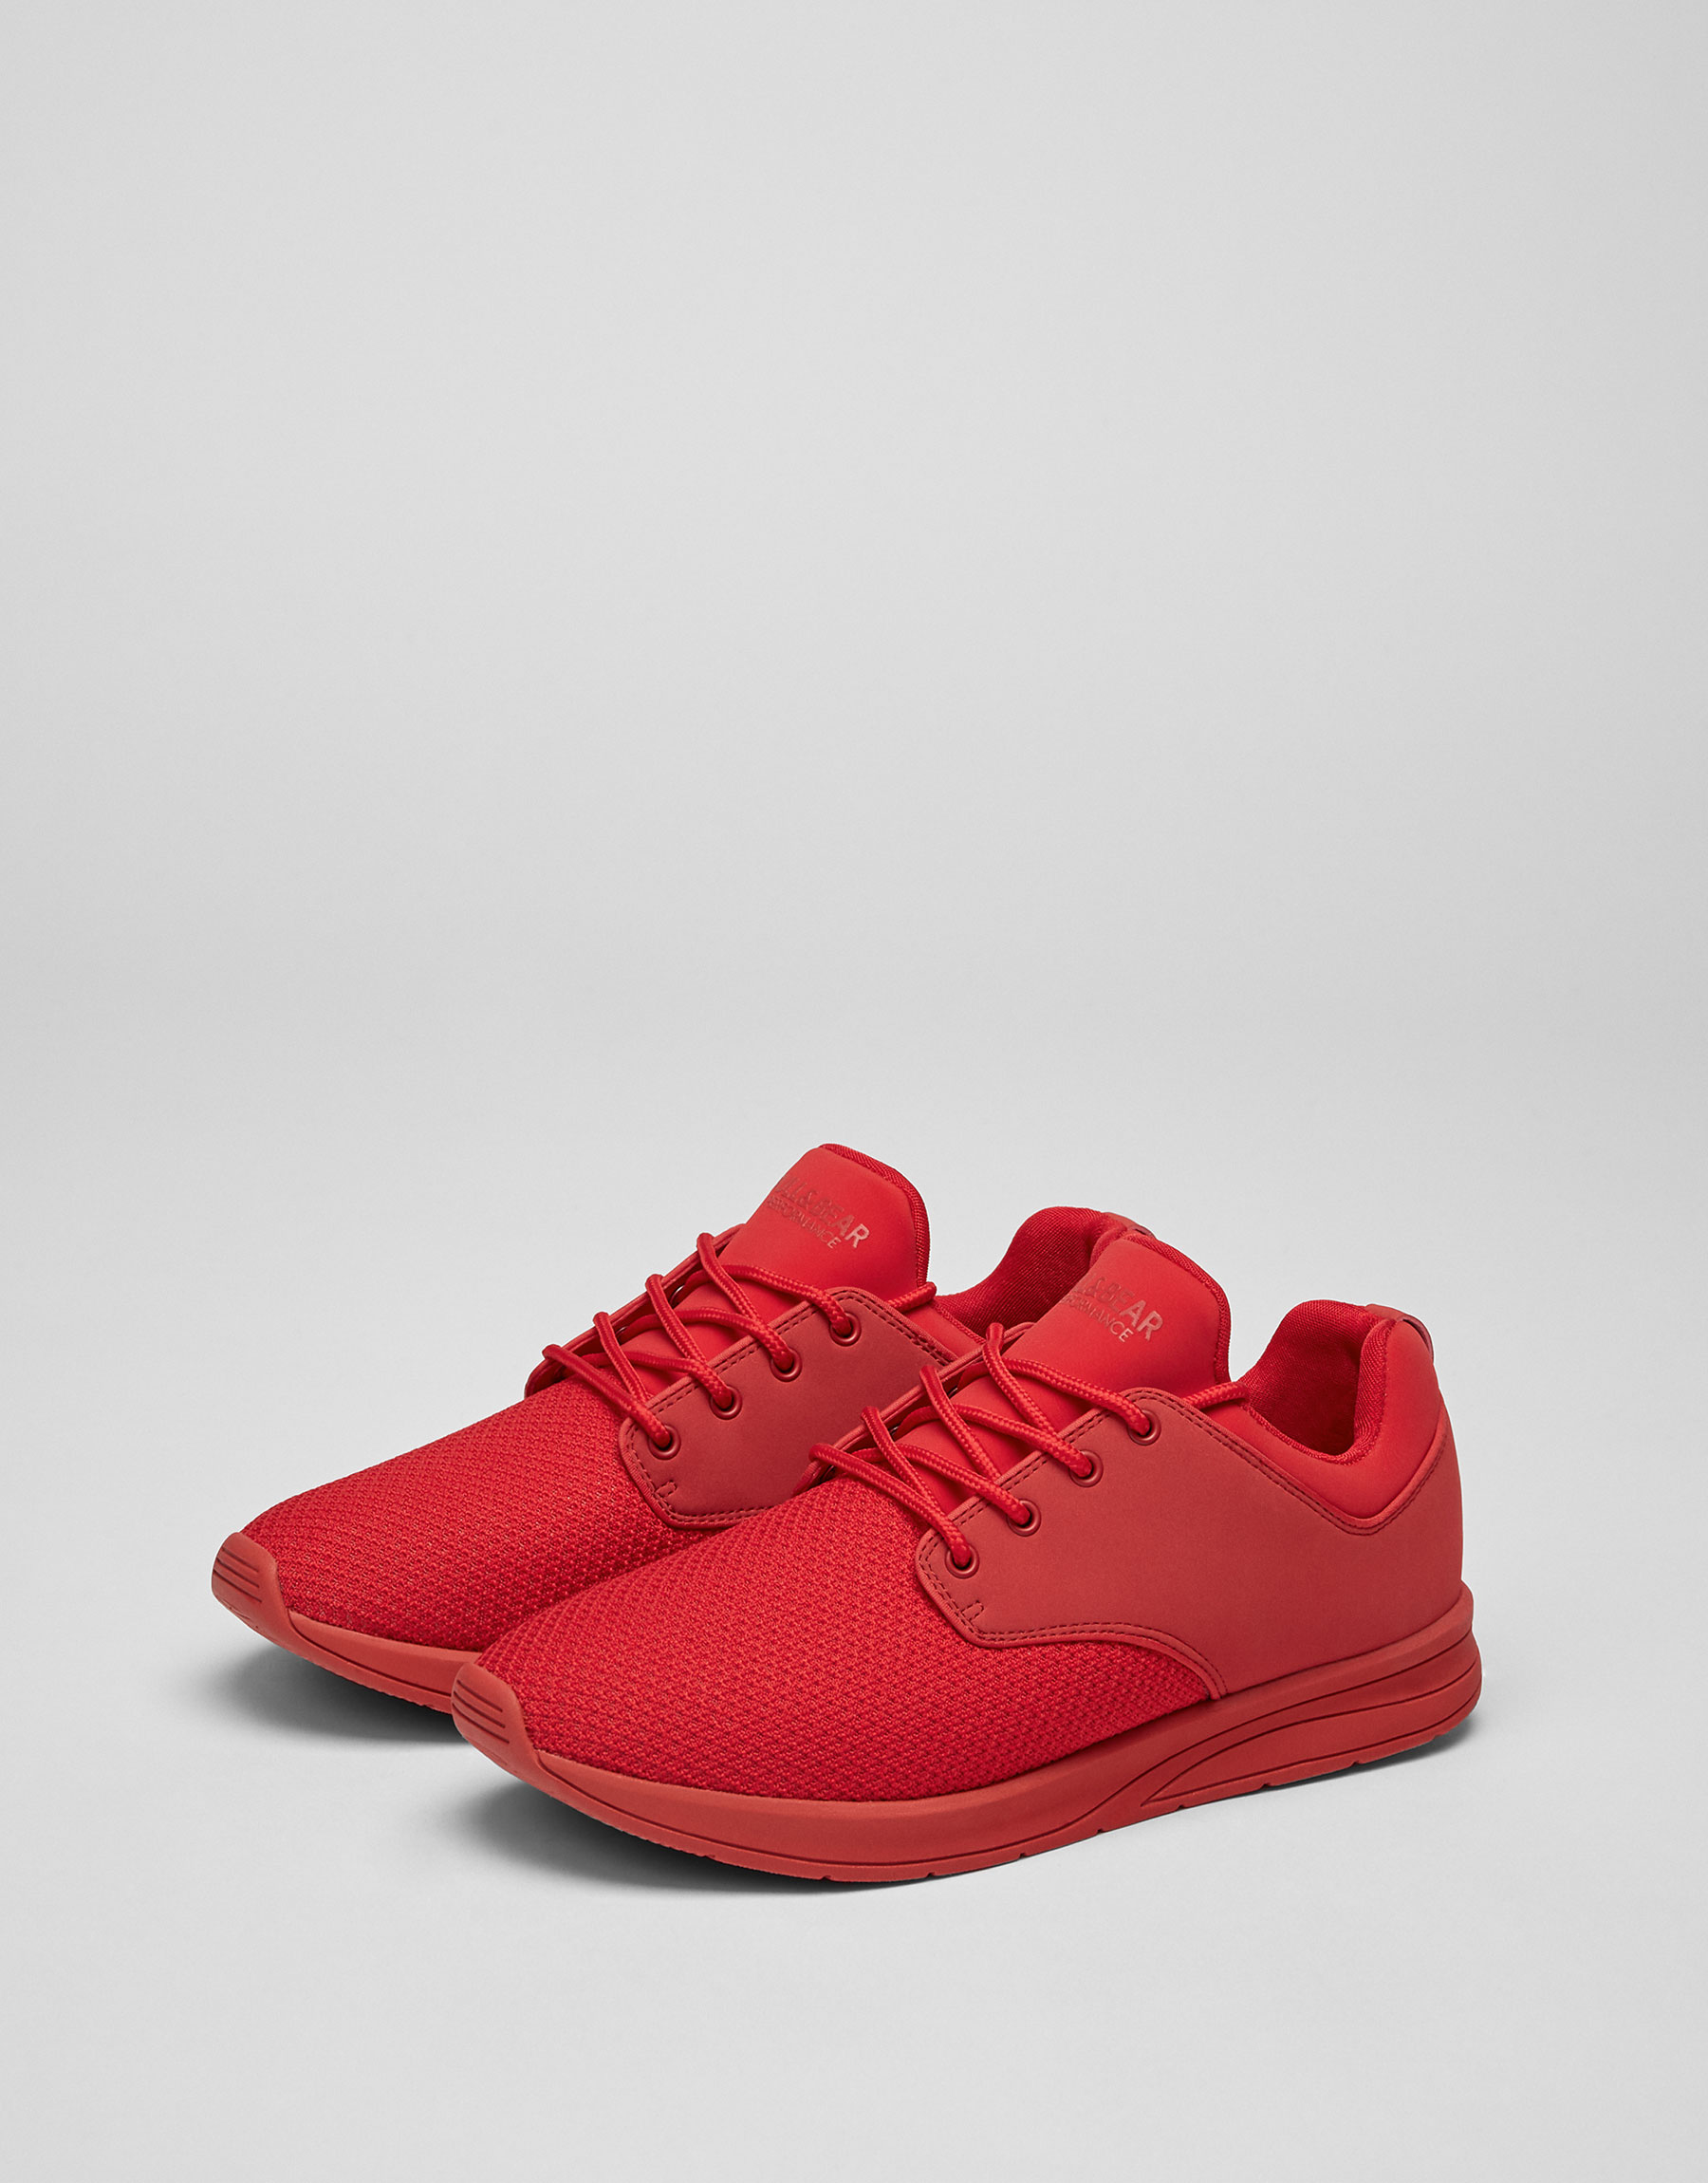 Single-coloured red soft sneakers